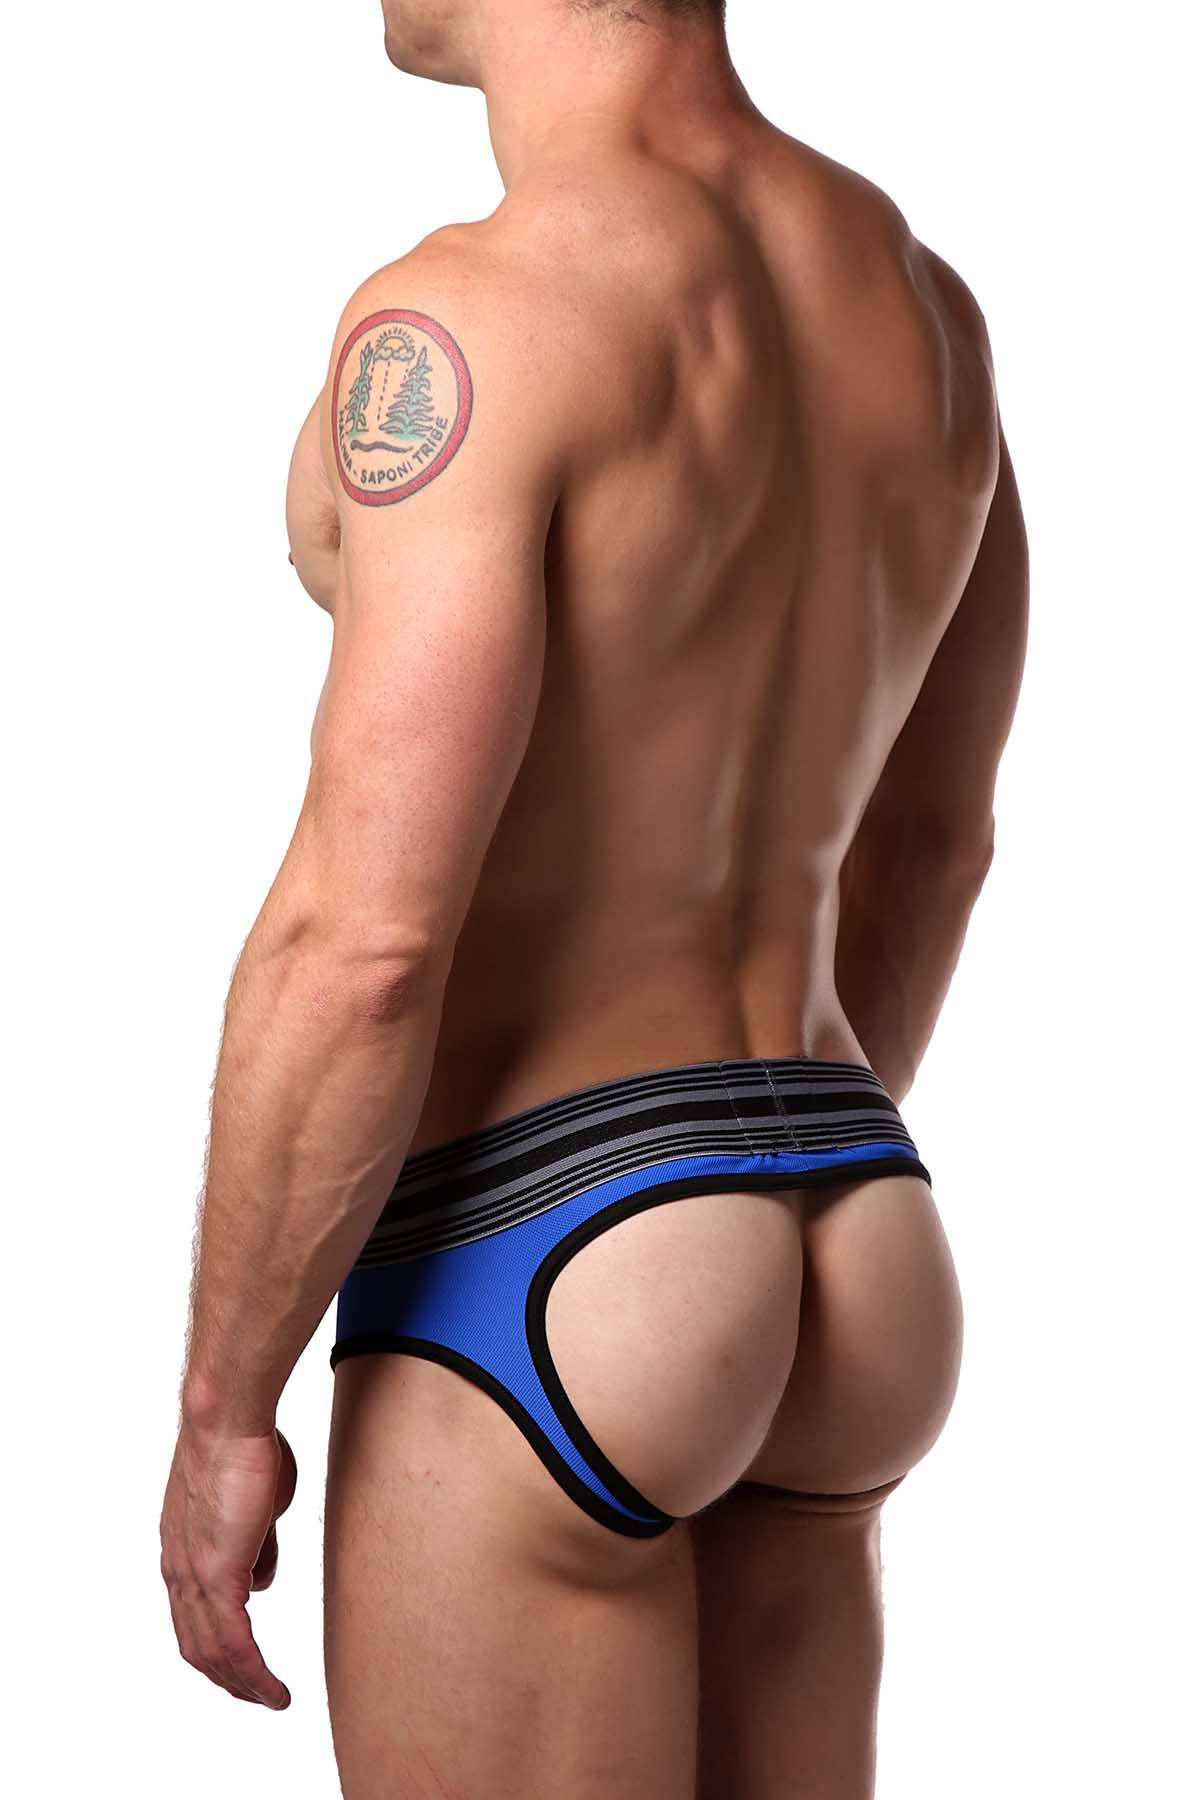 Cellblock 13 White/Grey/Blue Cellmate Jock-Brief